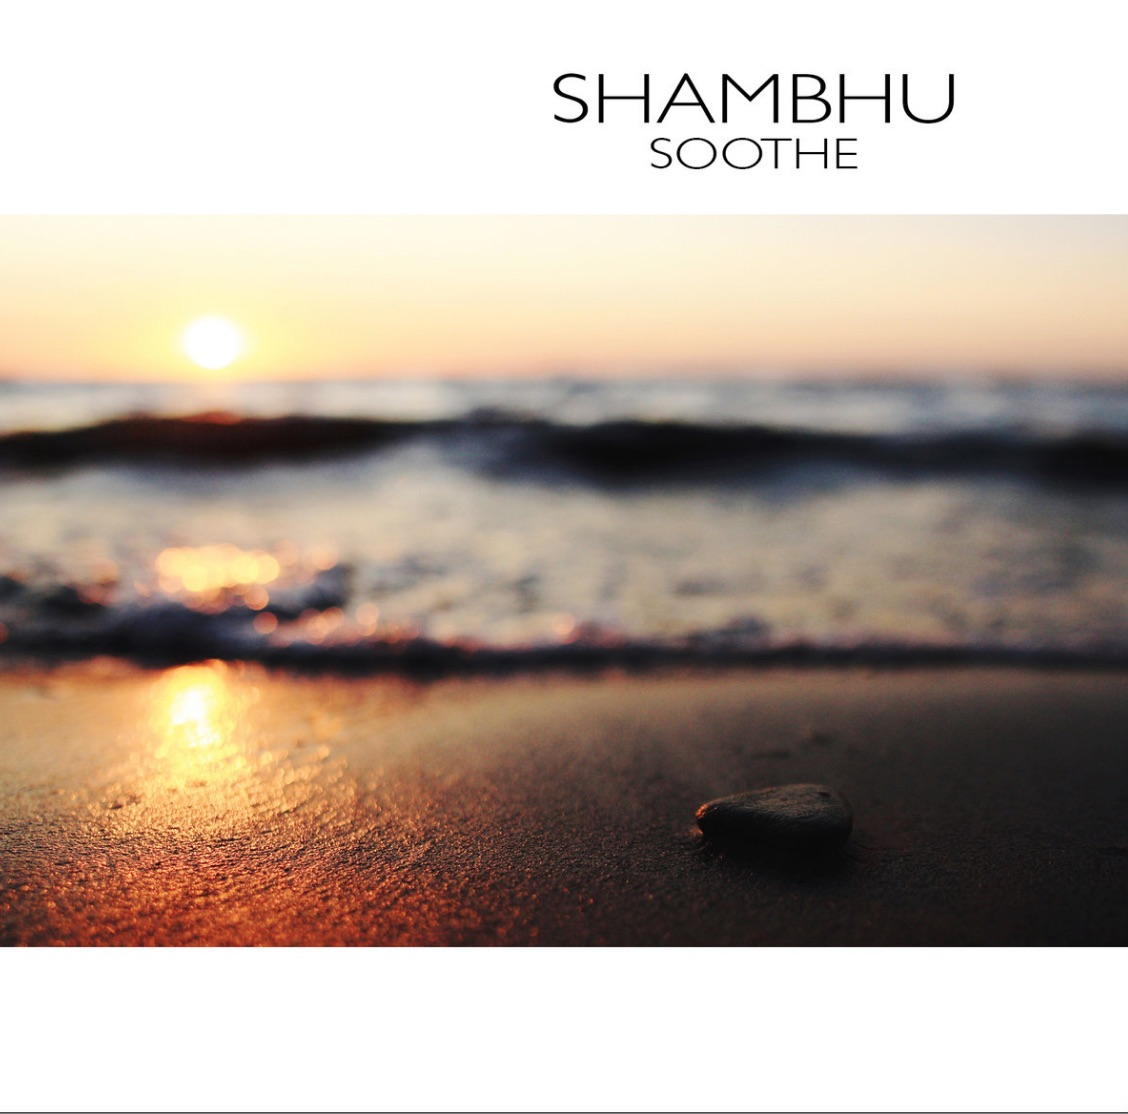 Shambhu released Soothe CD in February this year